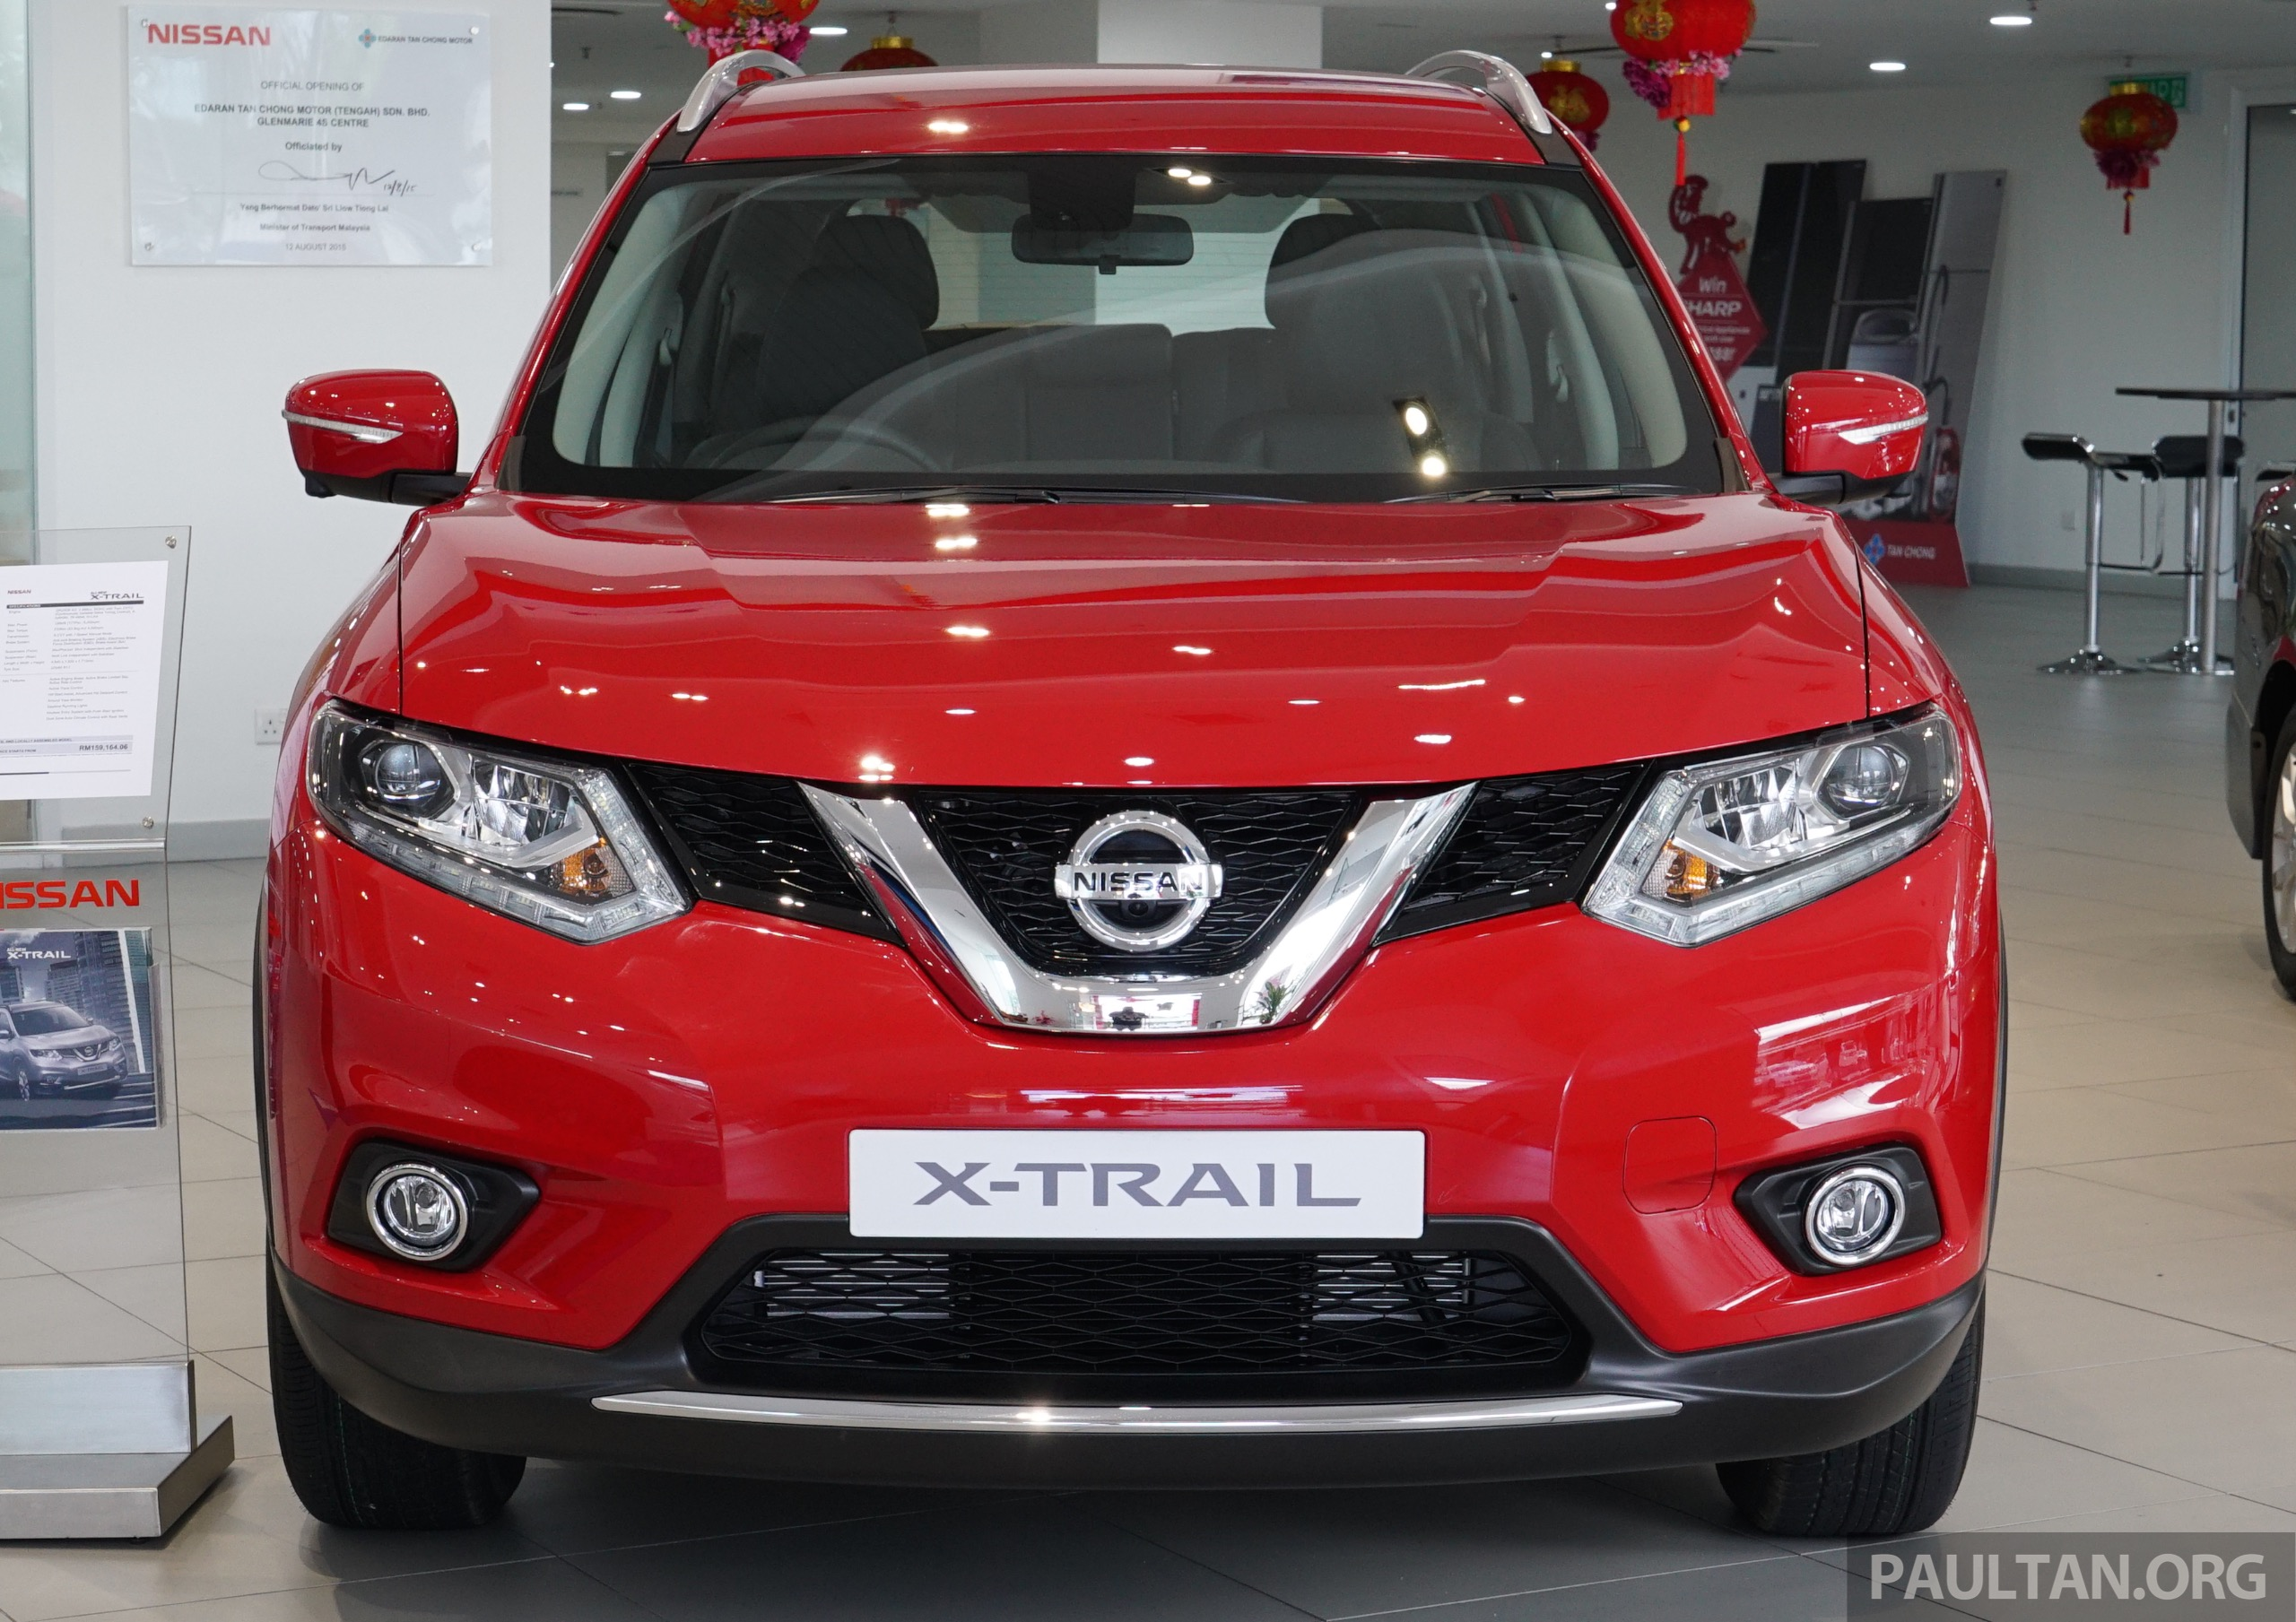 Nissan X Trail >> Nissan X-Trail – now available in Flaming Red for CNY Paul Tan - Image 432846